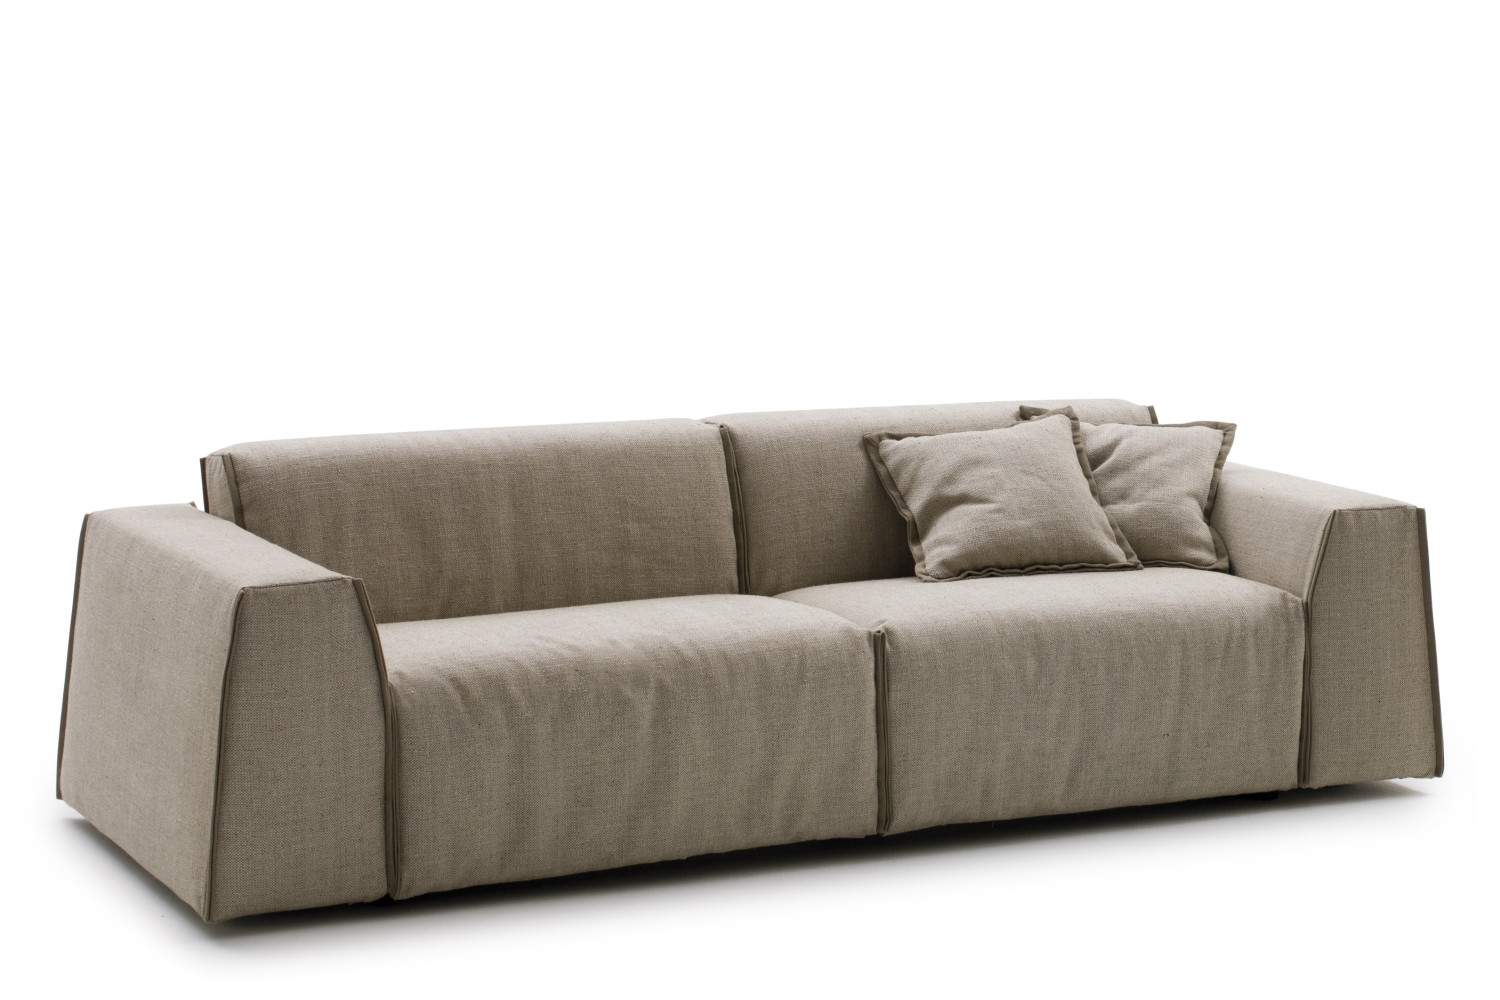 Parker sofa bed with low backrest for Divano letto low cost